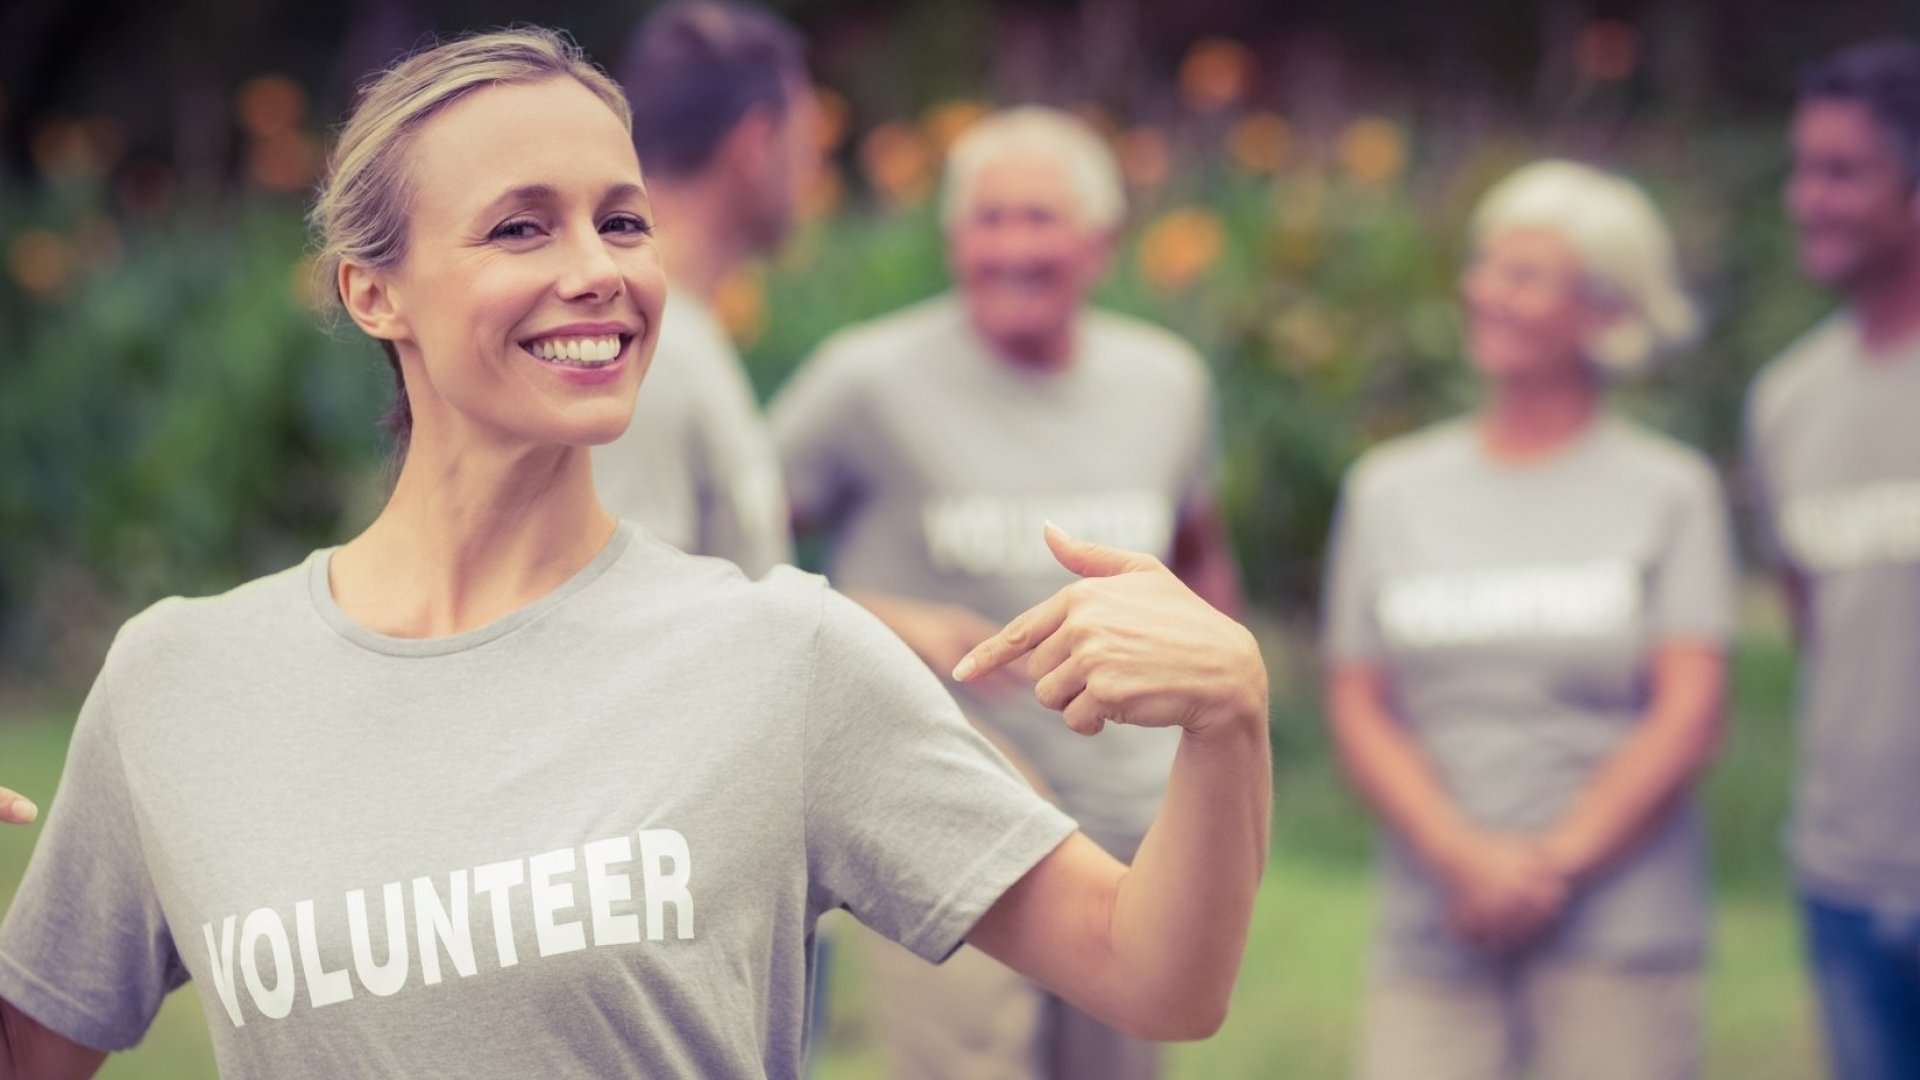 Running a Socially Conscious Business Can Make You and Your Employees Happier. Here's Proof